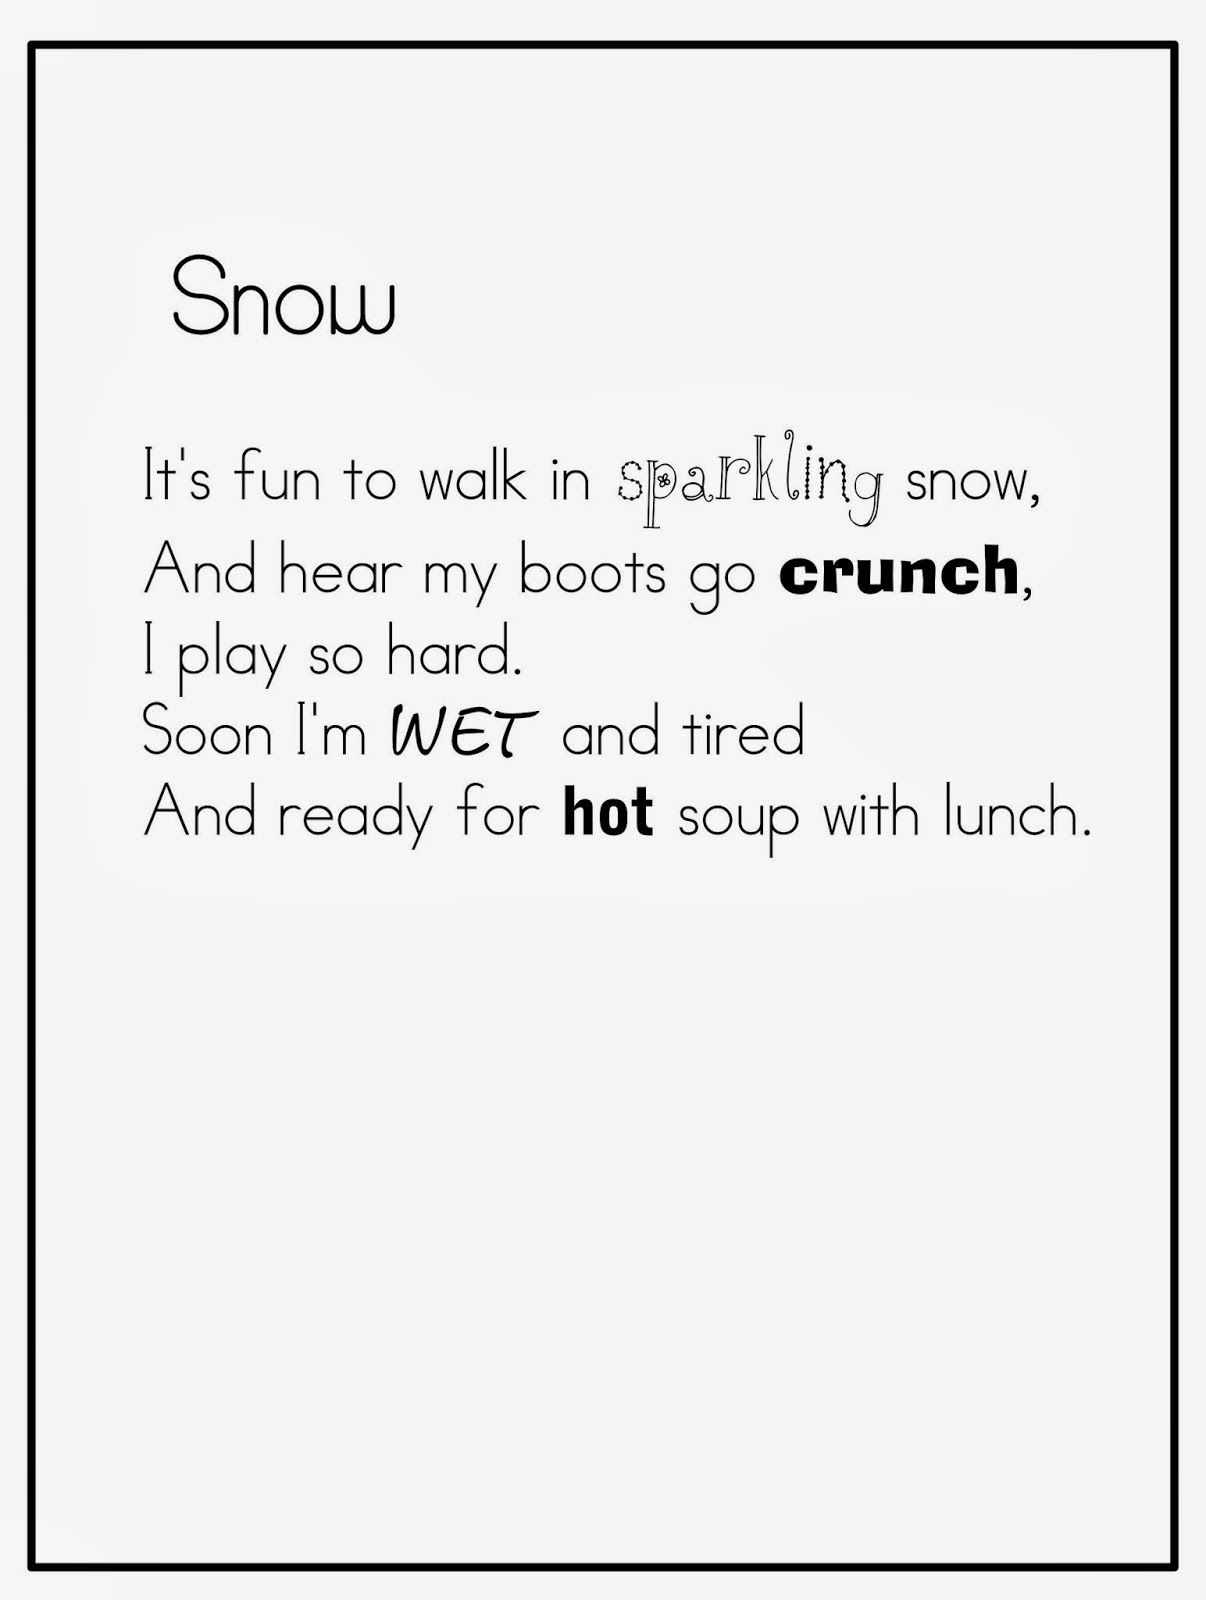 Winter Cute poems pictures images